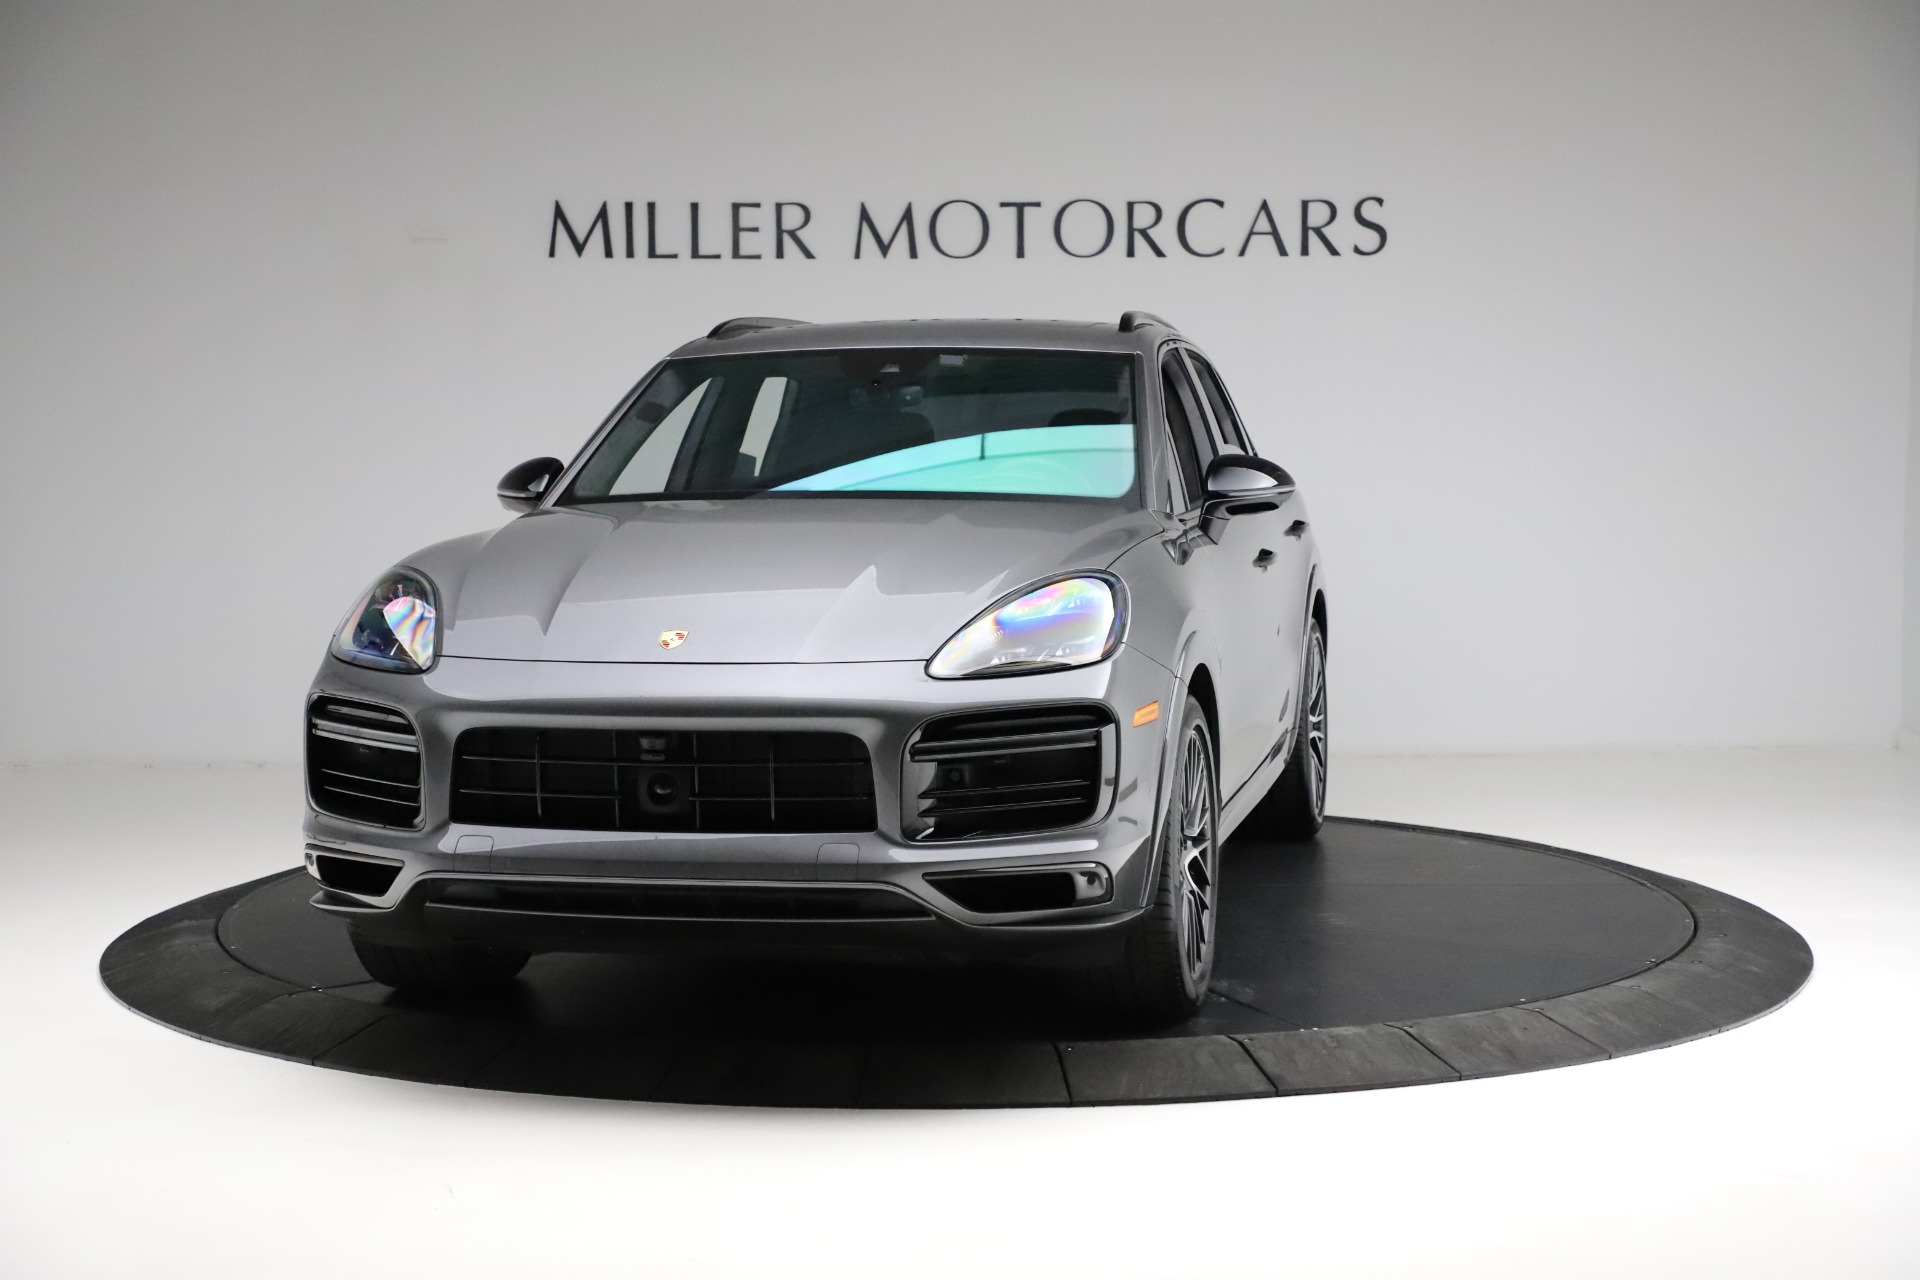 Used 2020 Porsche Cayenne Turbo for sale $145,900 at Bentley Greenwich in Greenwich CT 06830 1